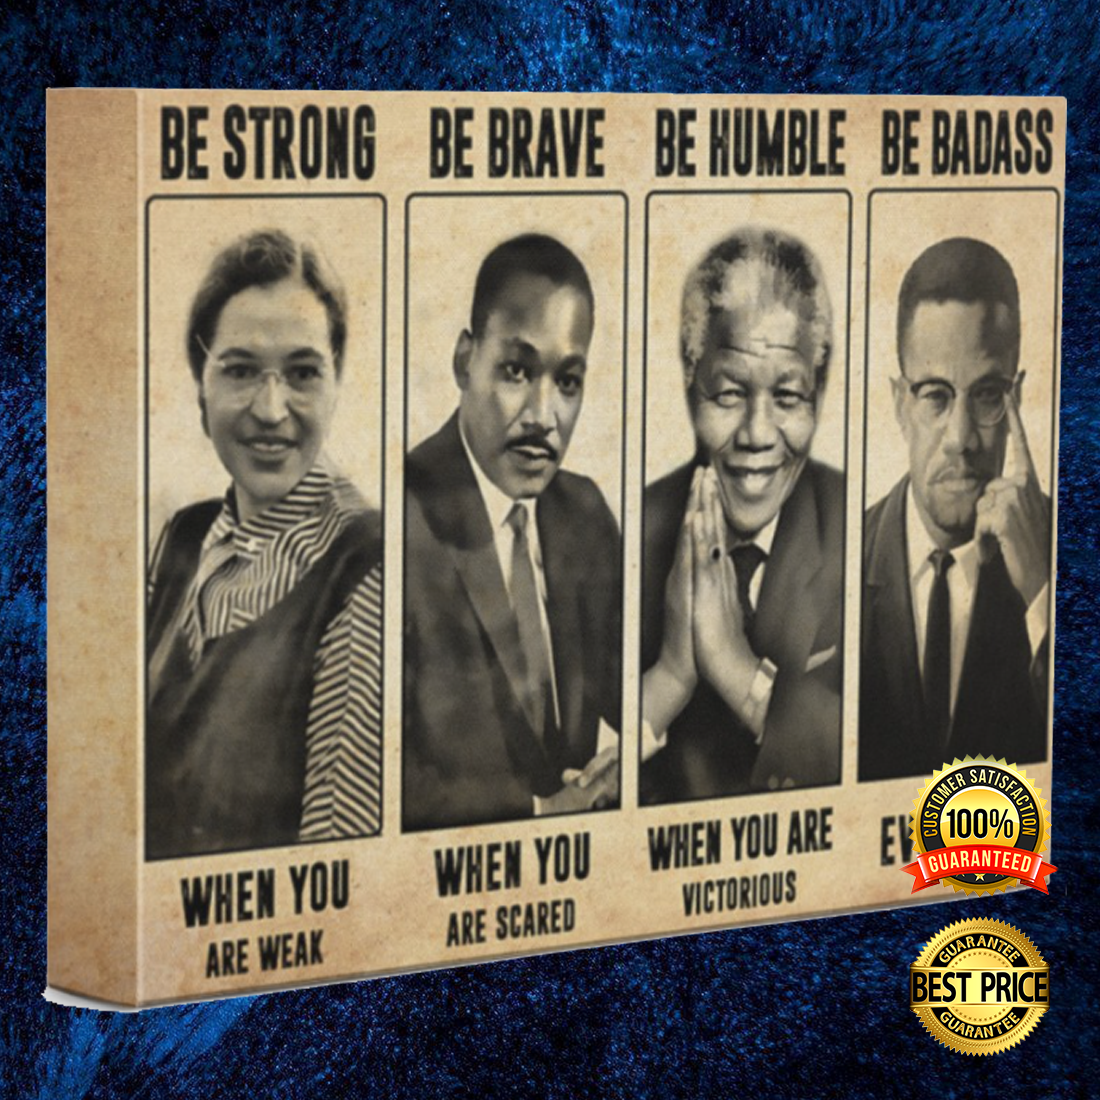 Famous black people be strong when you are weak be brave when you are scared canvas 5